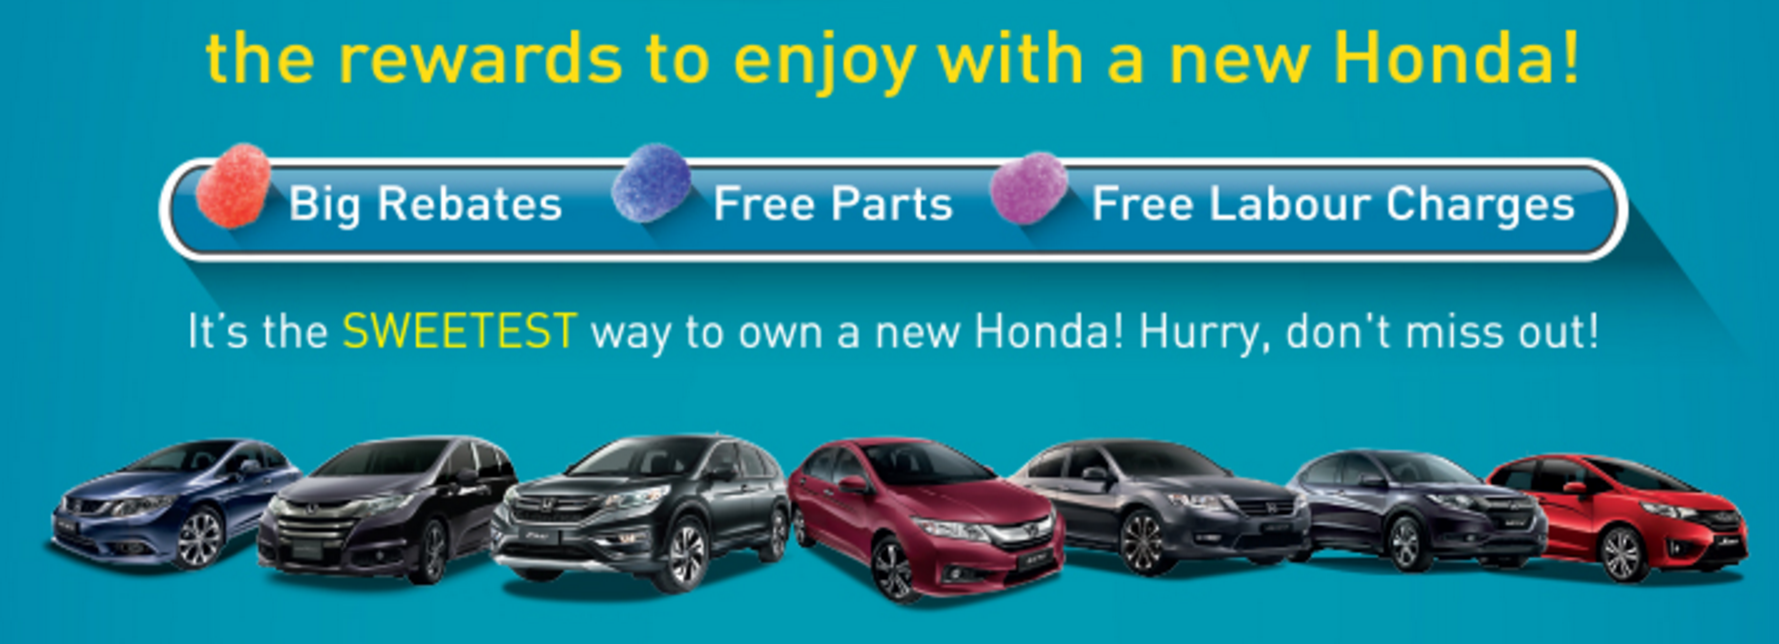 Honda Discount Promotion March 2016